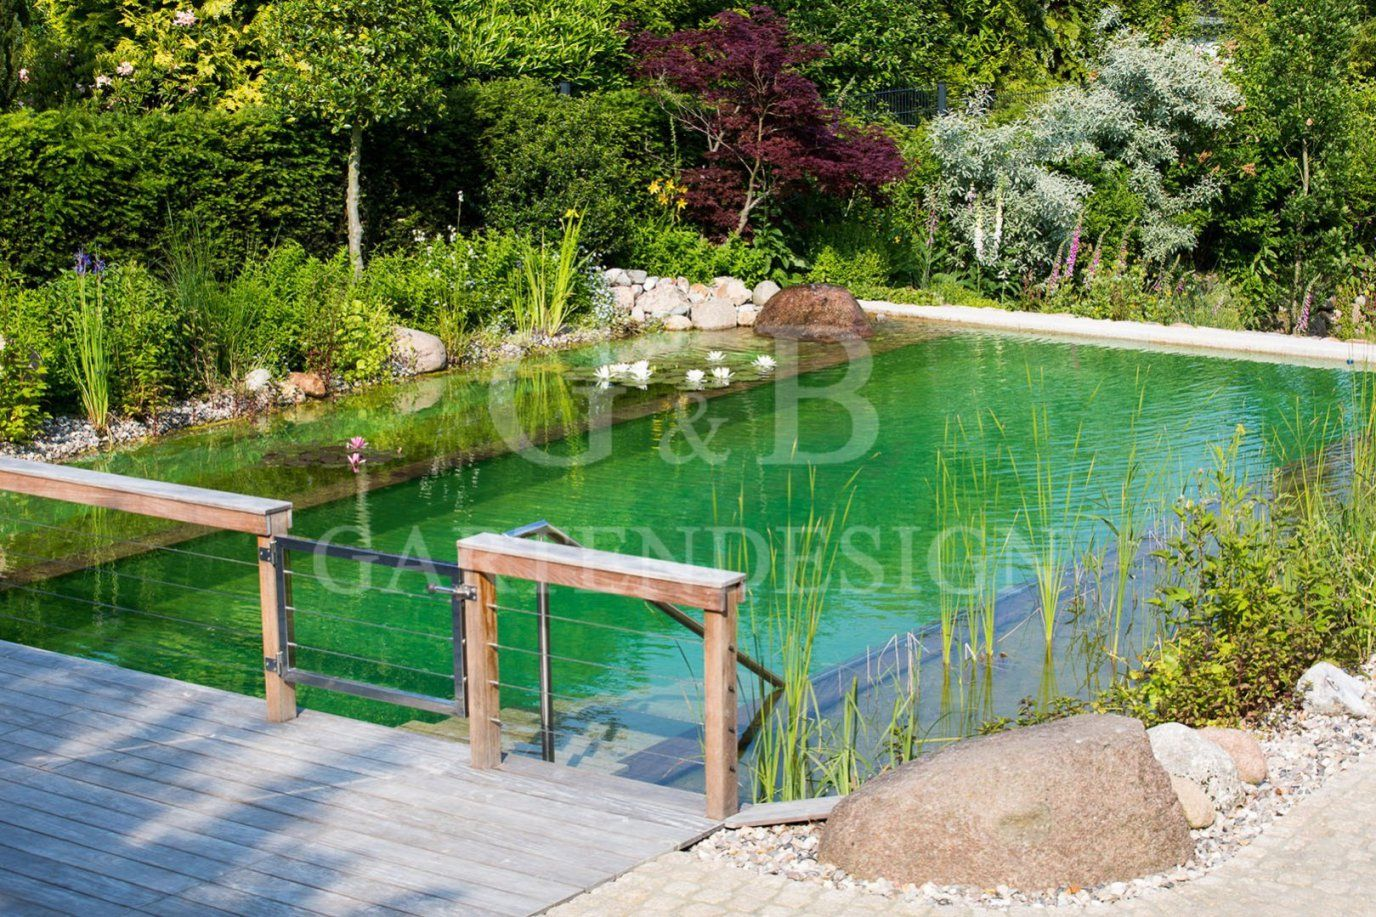 Well2wellness Hydraulischer Pool Bodensauger/poolsauger 'dpool Easy' Pool Garten Lustig